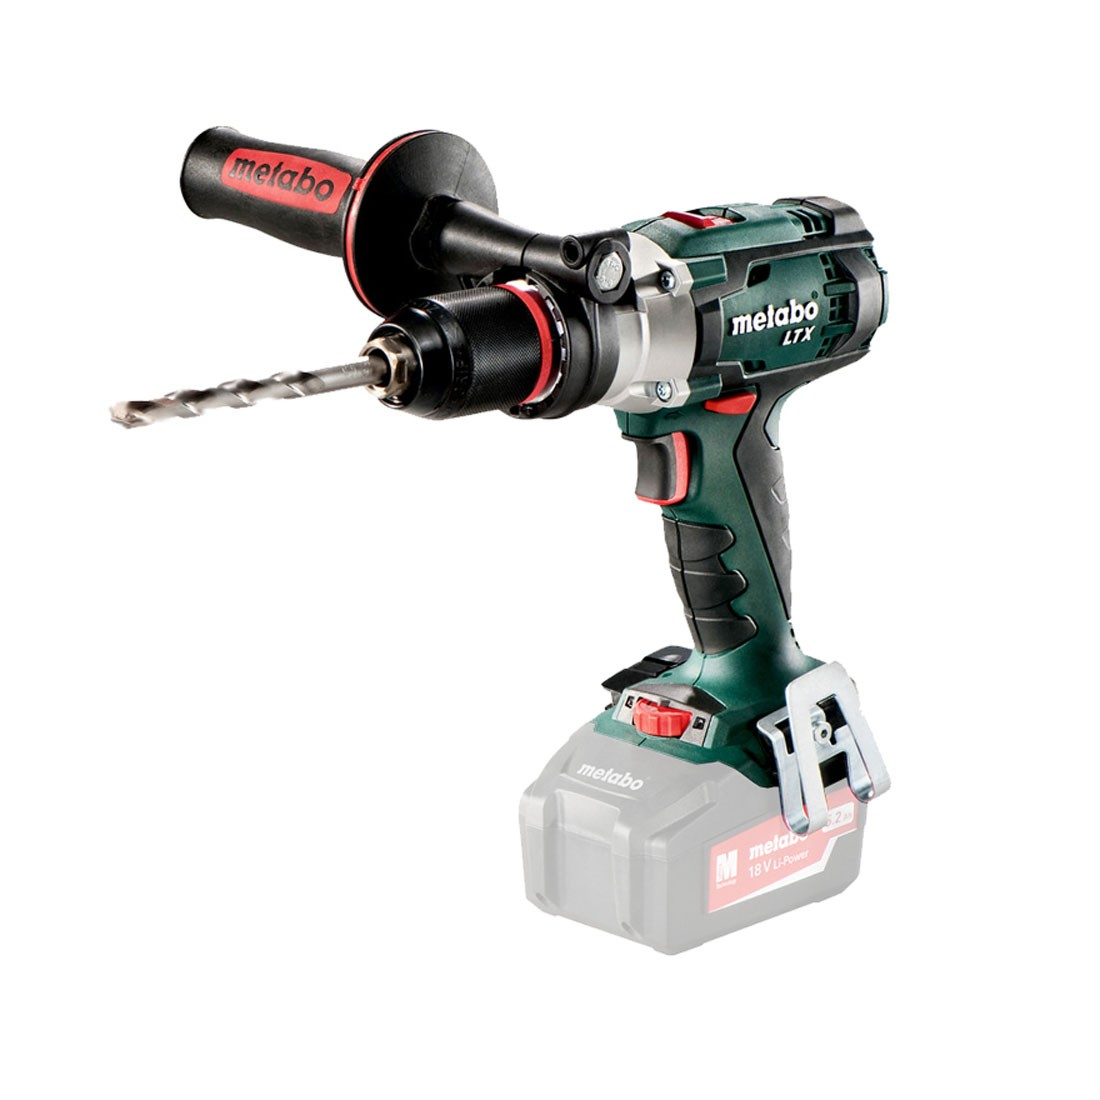 Metabo SB 18 LTX Impuls PowerExtreme 18v Combi Drill Body Only